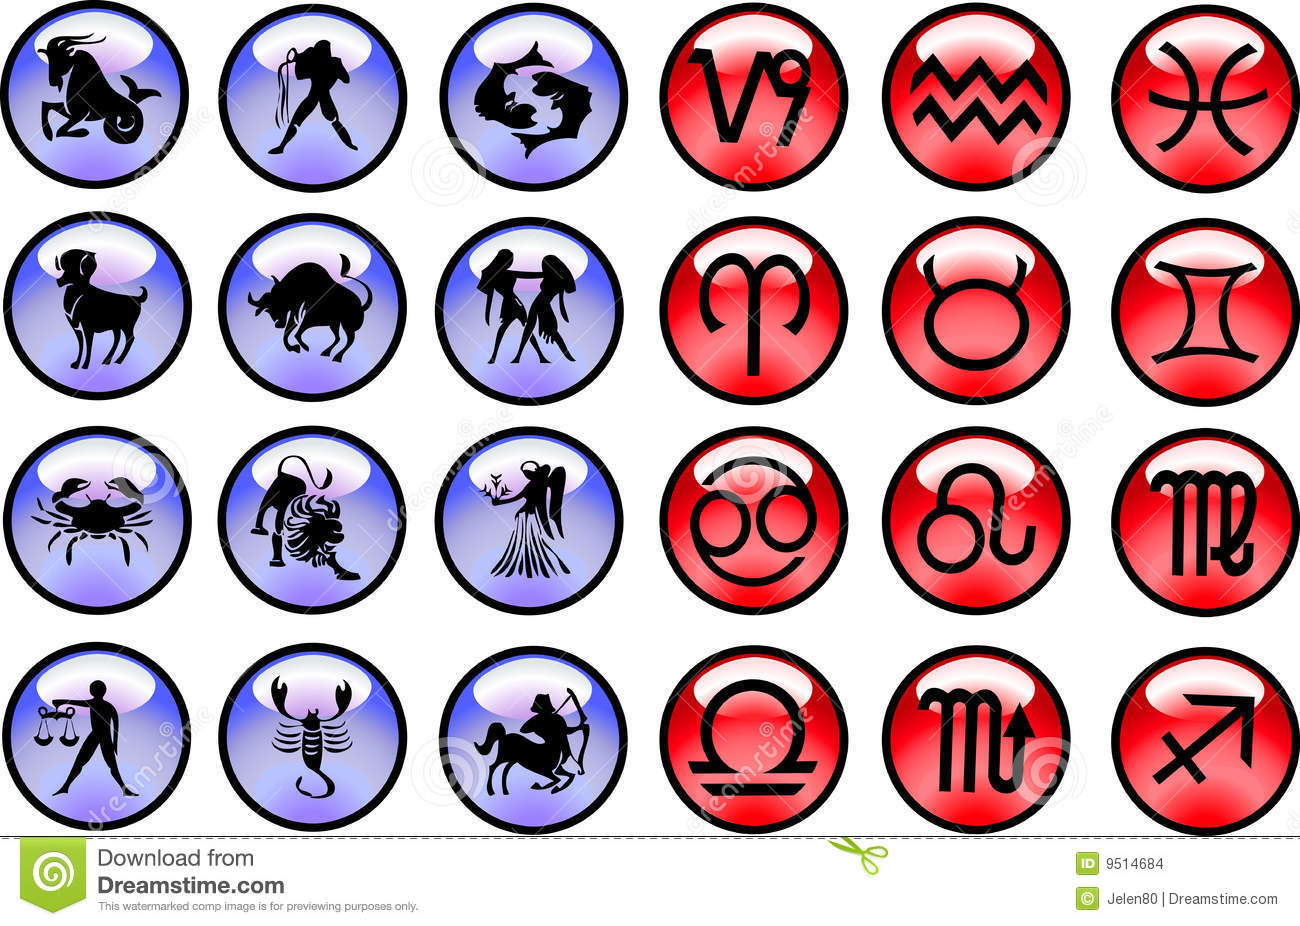 Horoscope Signs And Symbols Stock Images - Image: 9514684